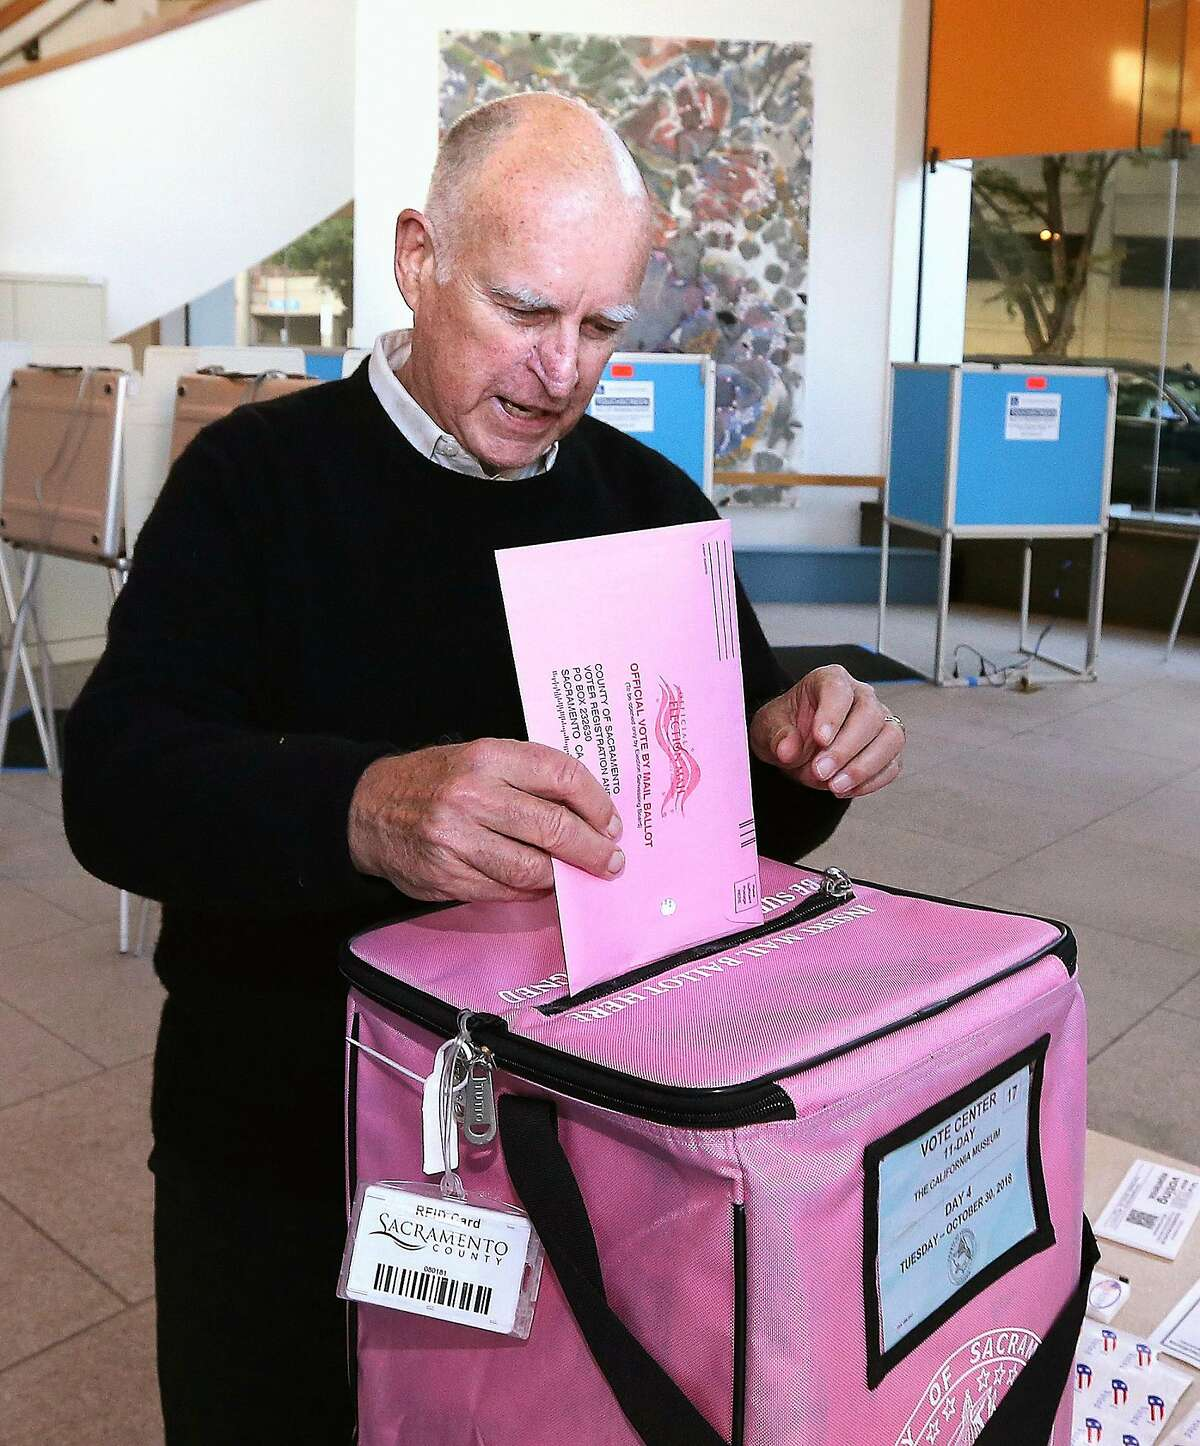 Gov. Jerry Brown casts his ballot at a voting center at The California Museum Tuesday, Oct. 30, 2018, in Sacramento, Calif. One name that wasn't on the ballot this year, was Brown's, who is being termed out of office. Brown will have served 16 years as California's governor, starting in Jan. 1975 through Jan. 3, 1983 and then reelected in November of 2010. (AP Photo/Rich Pedroncelli)